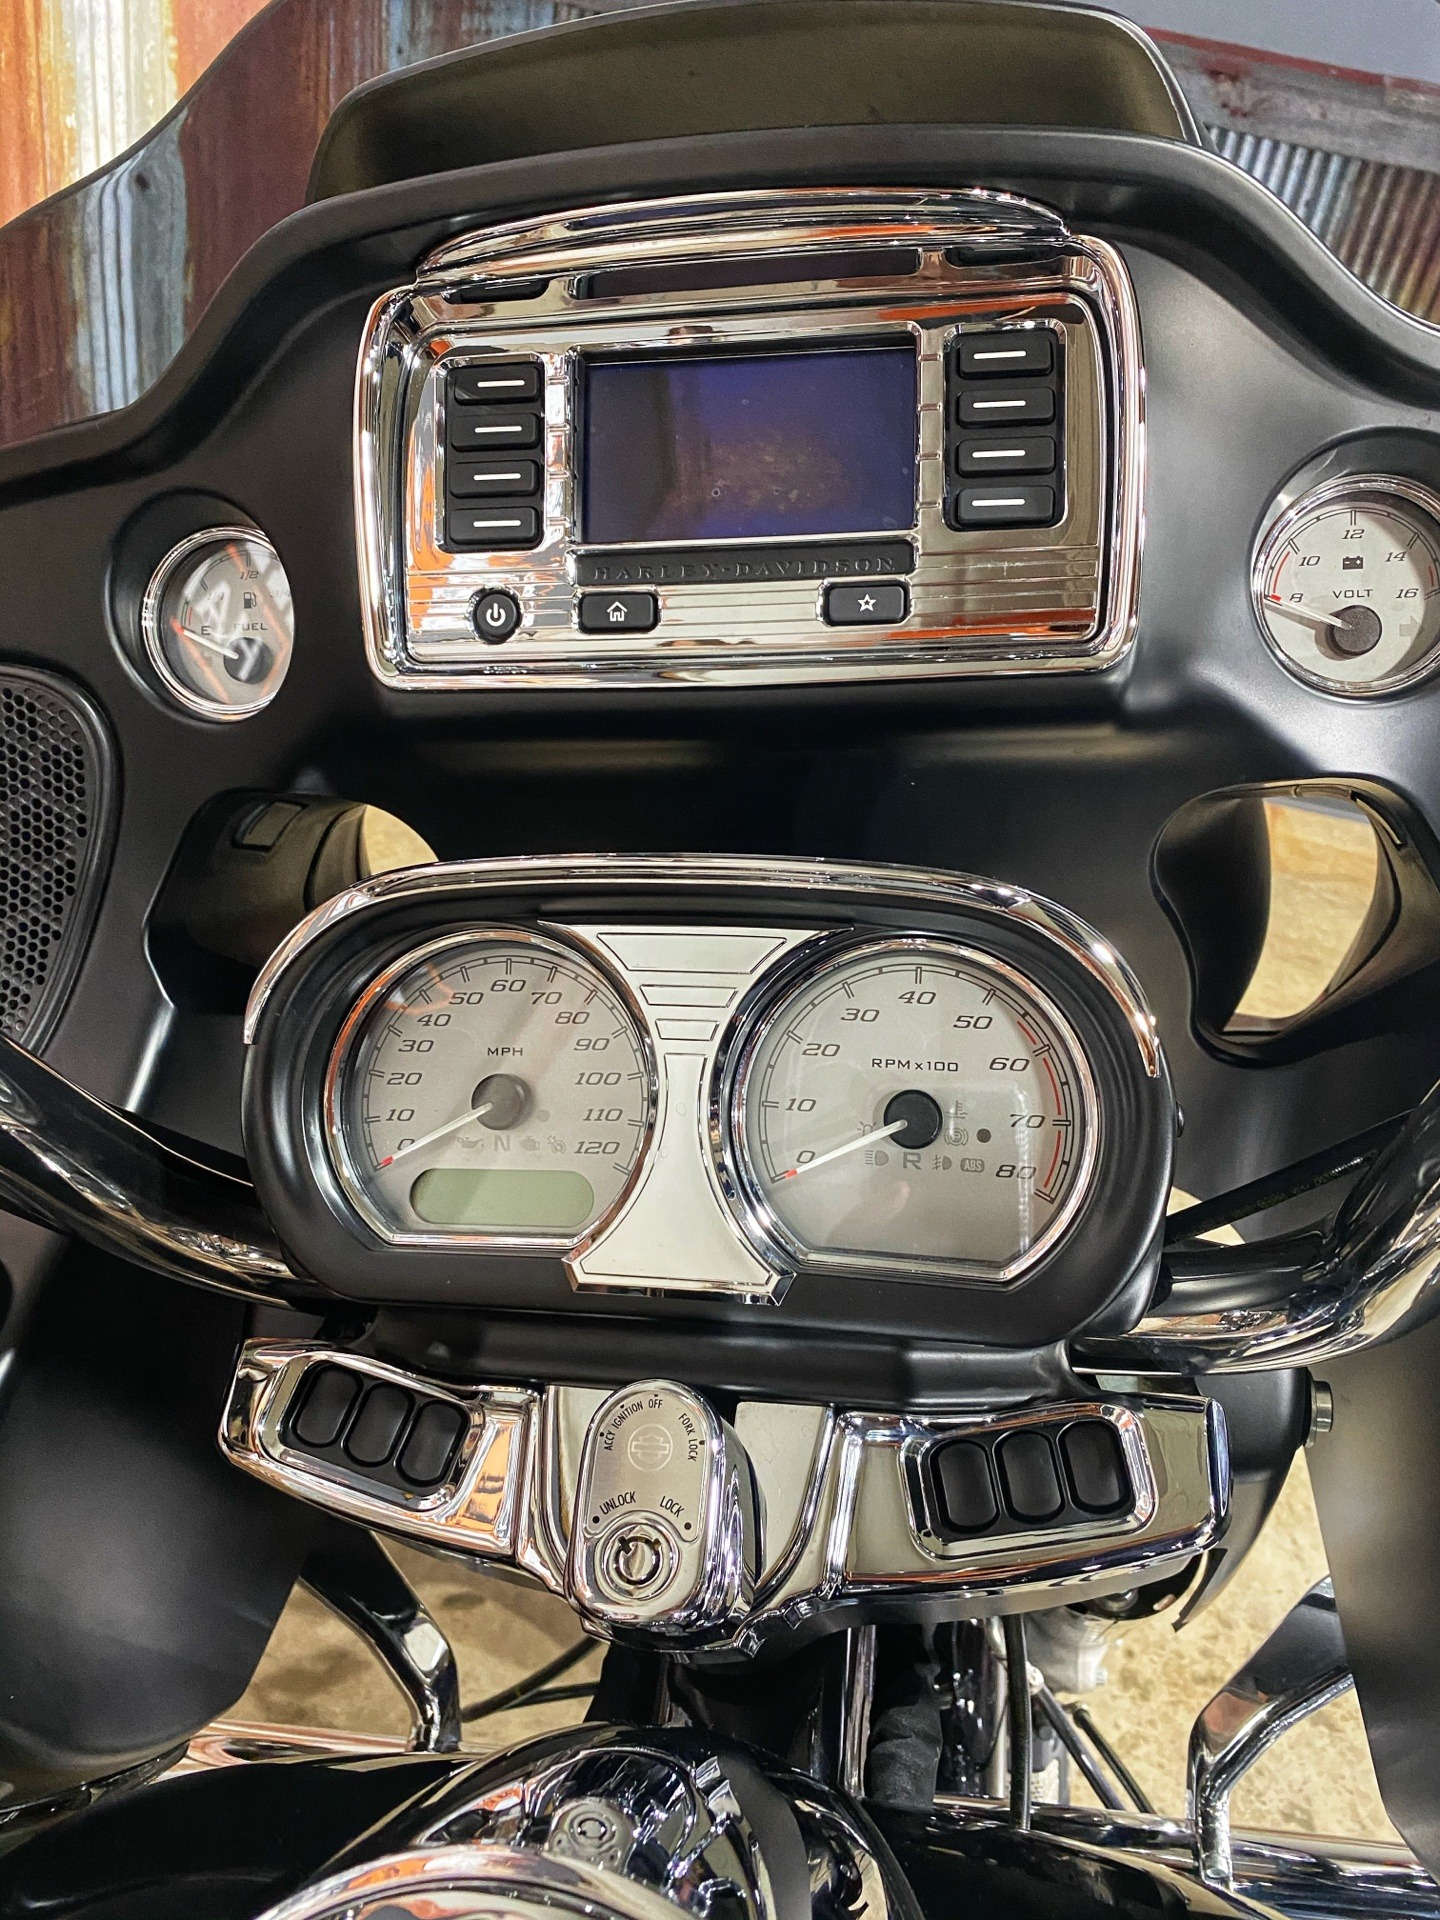 2015 Harley-Davidson Road Glide® in Chippewa Falls, Wisconsin - Photo 13